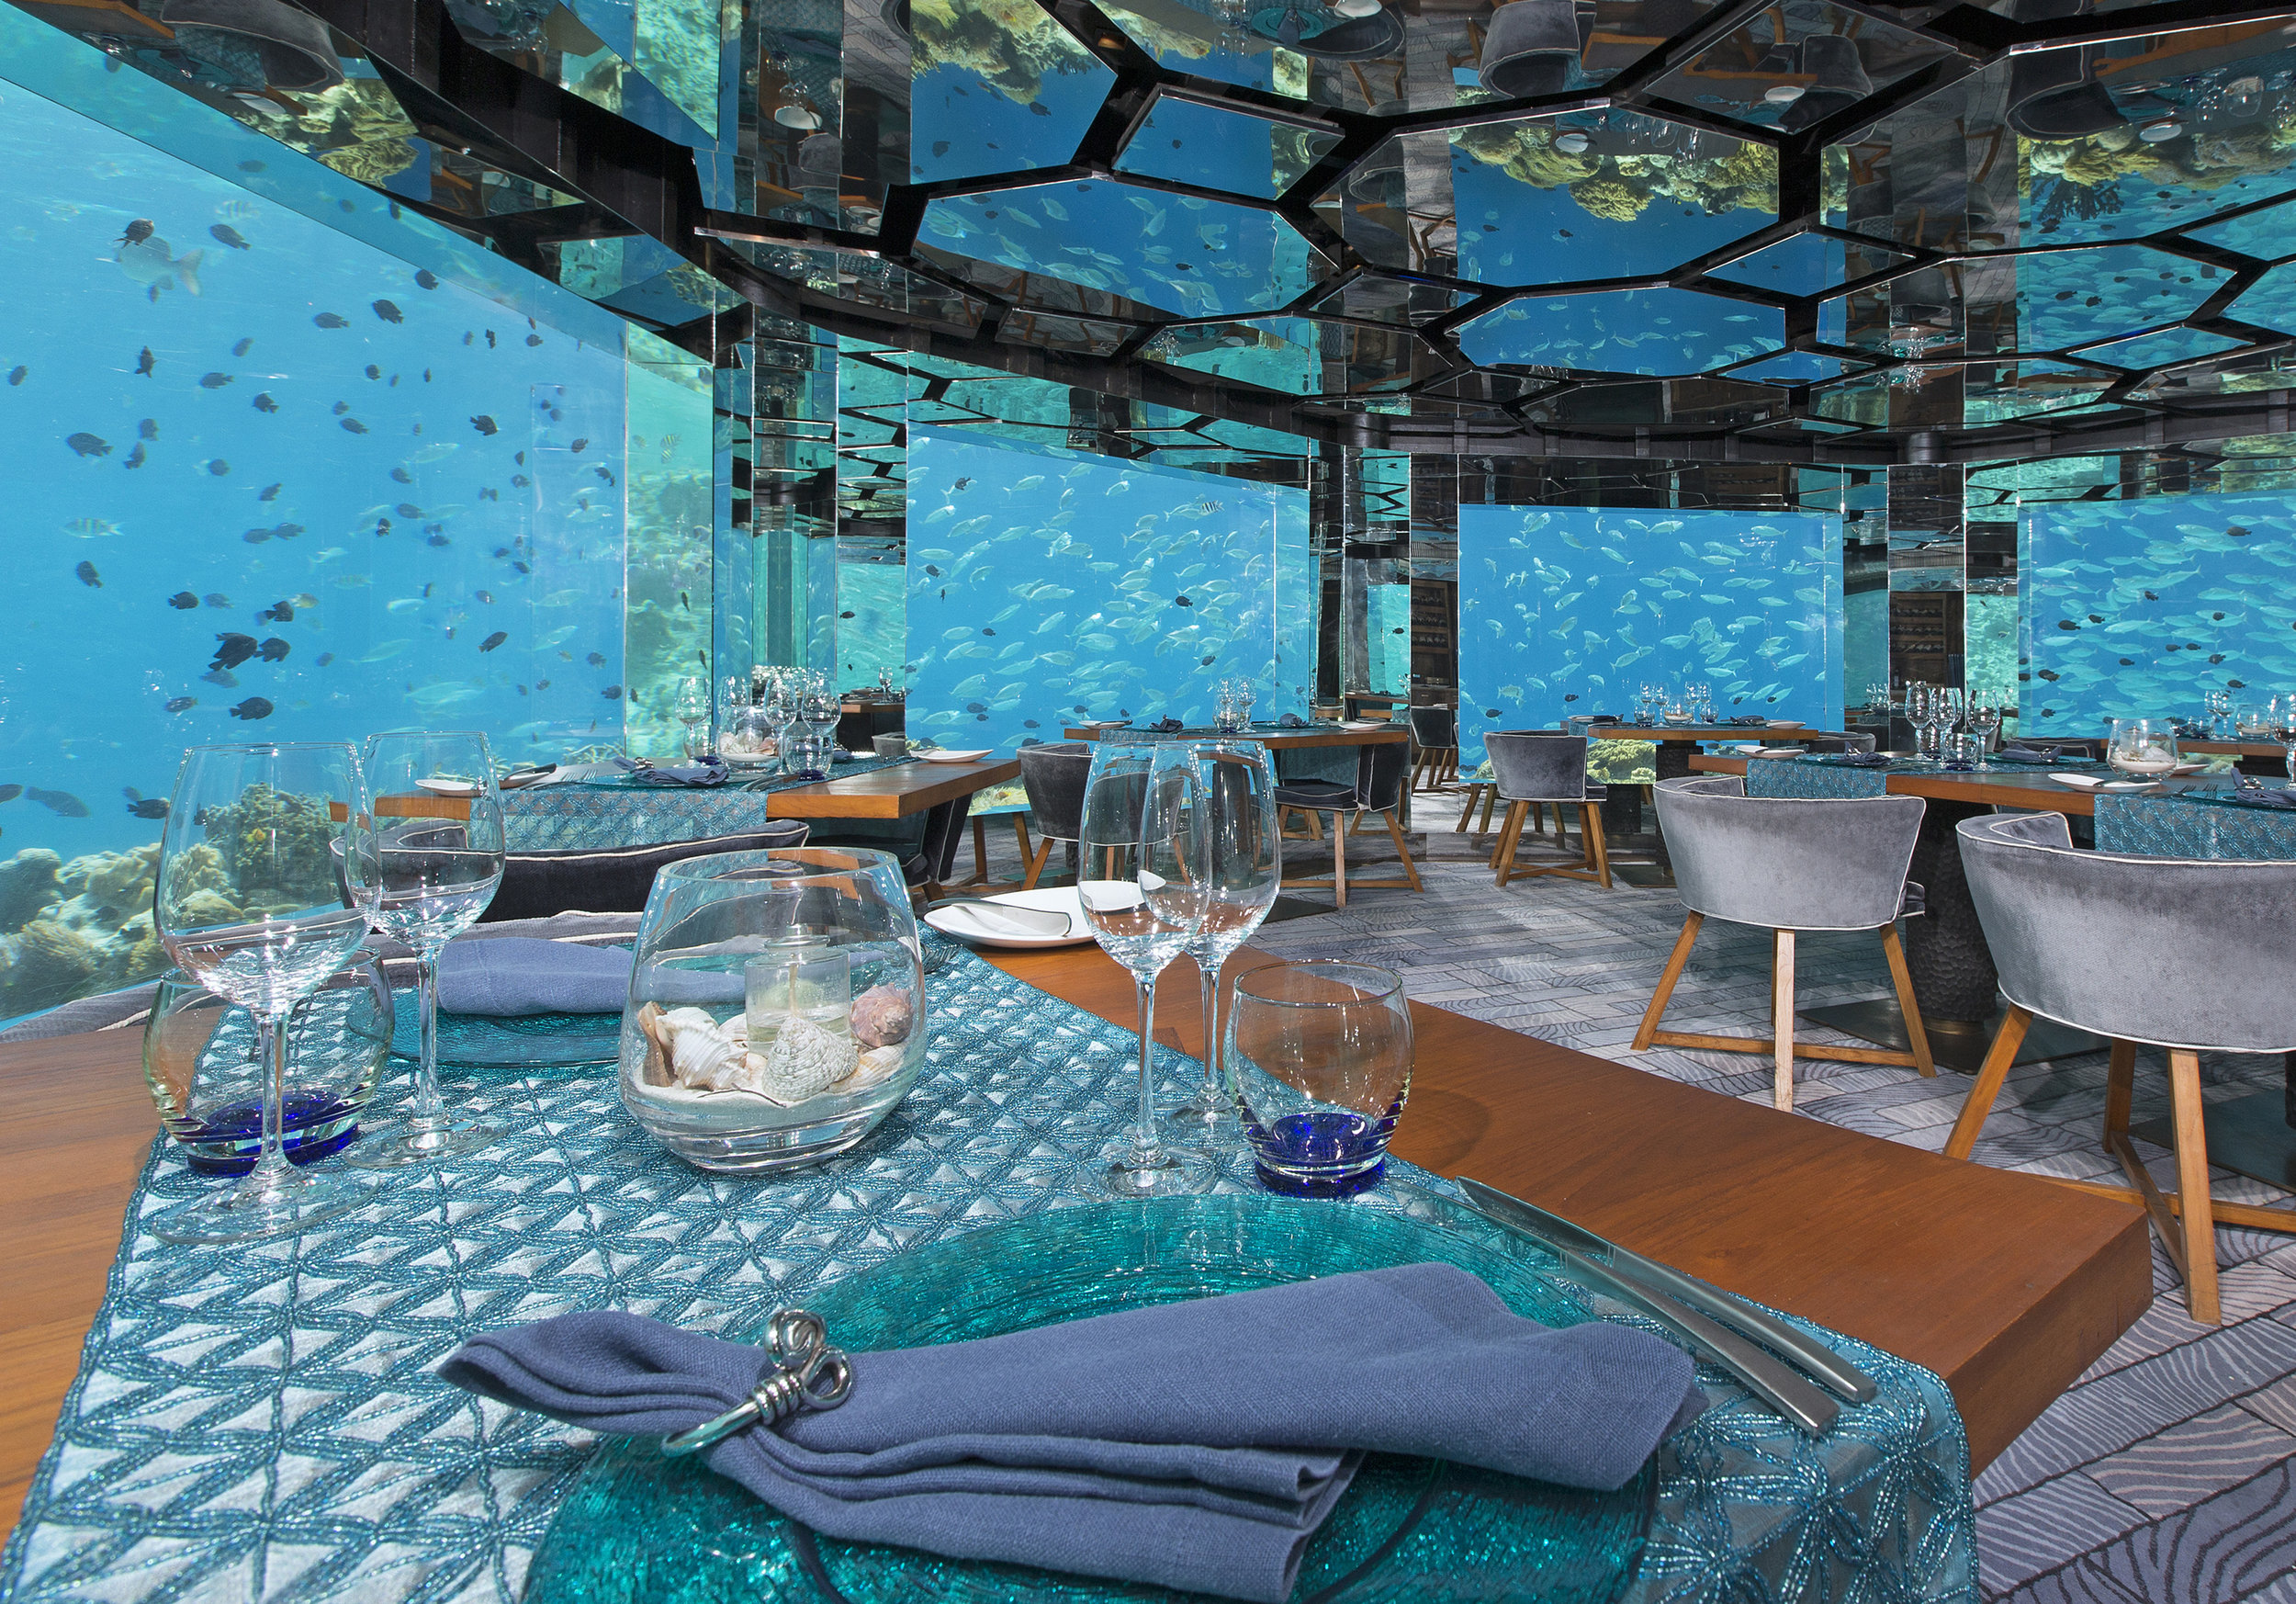 AKIH_61617014_Sea_underwater_restaurant.jpg